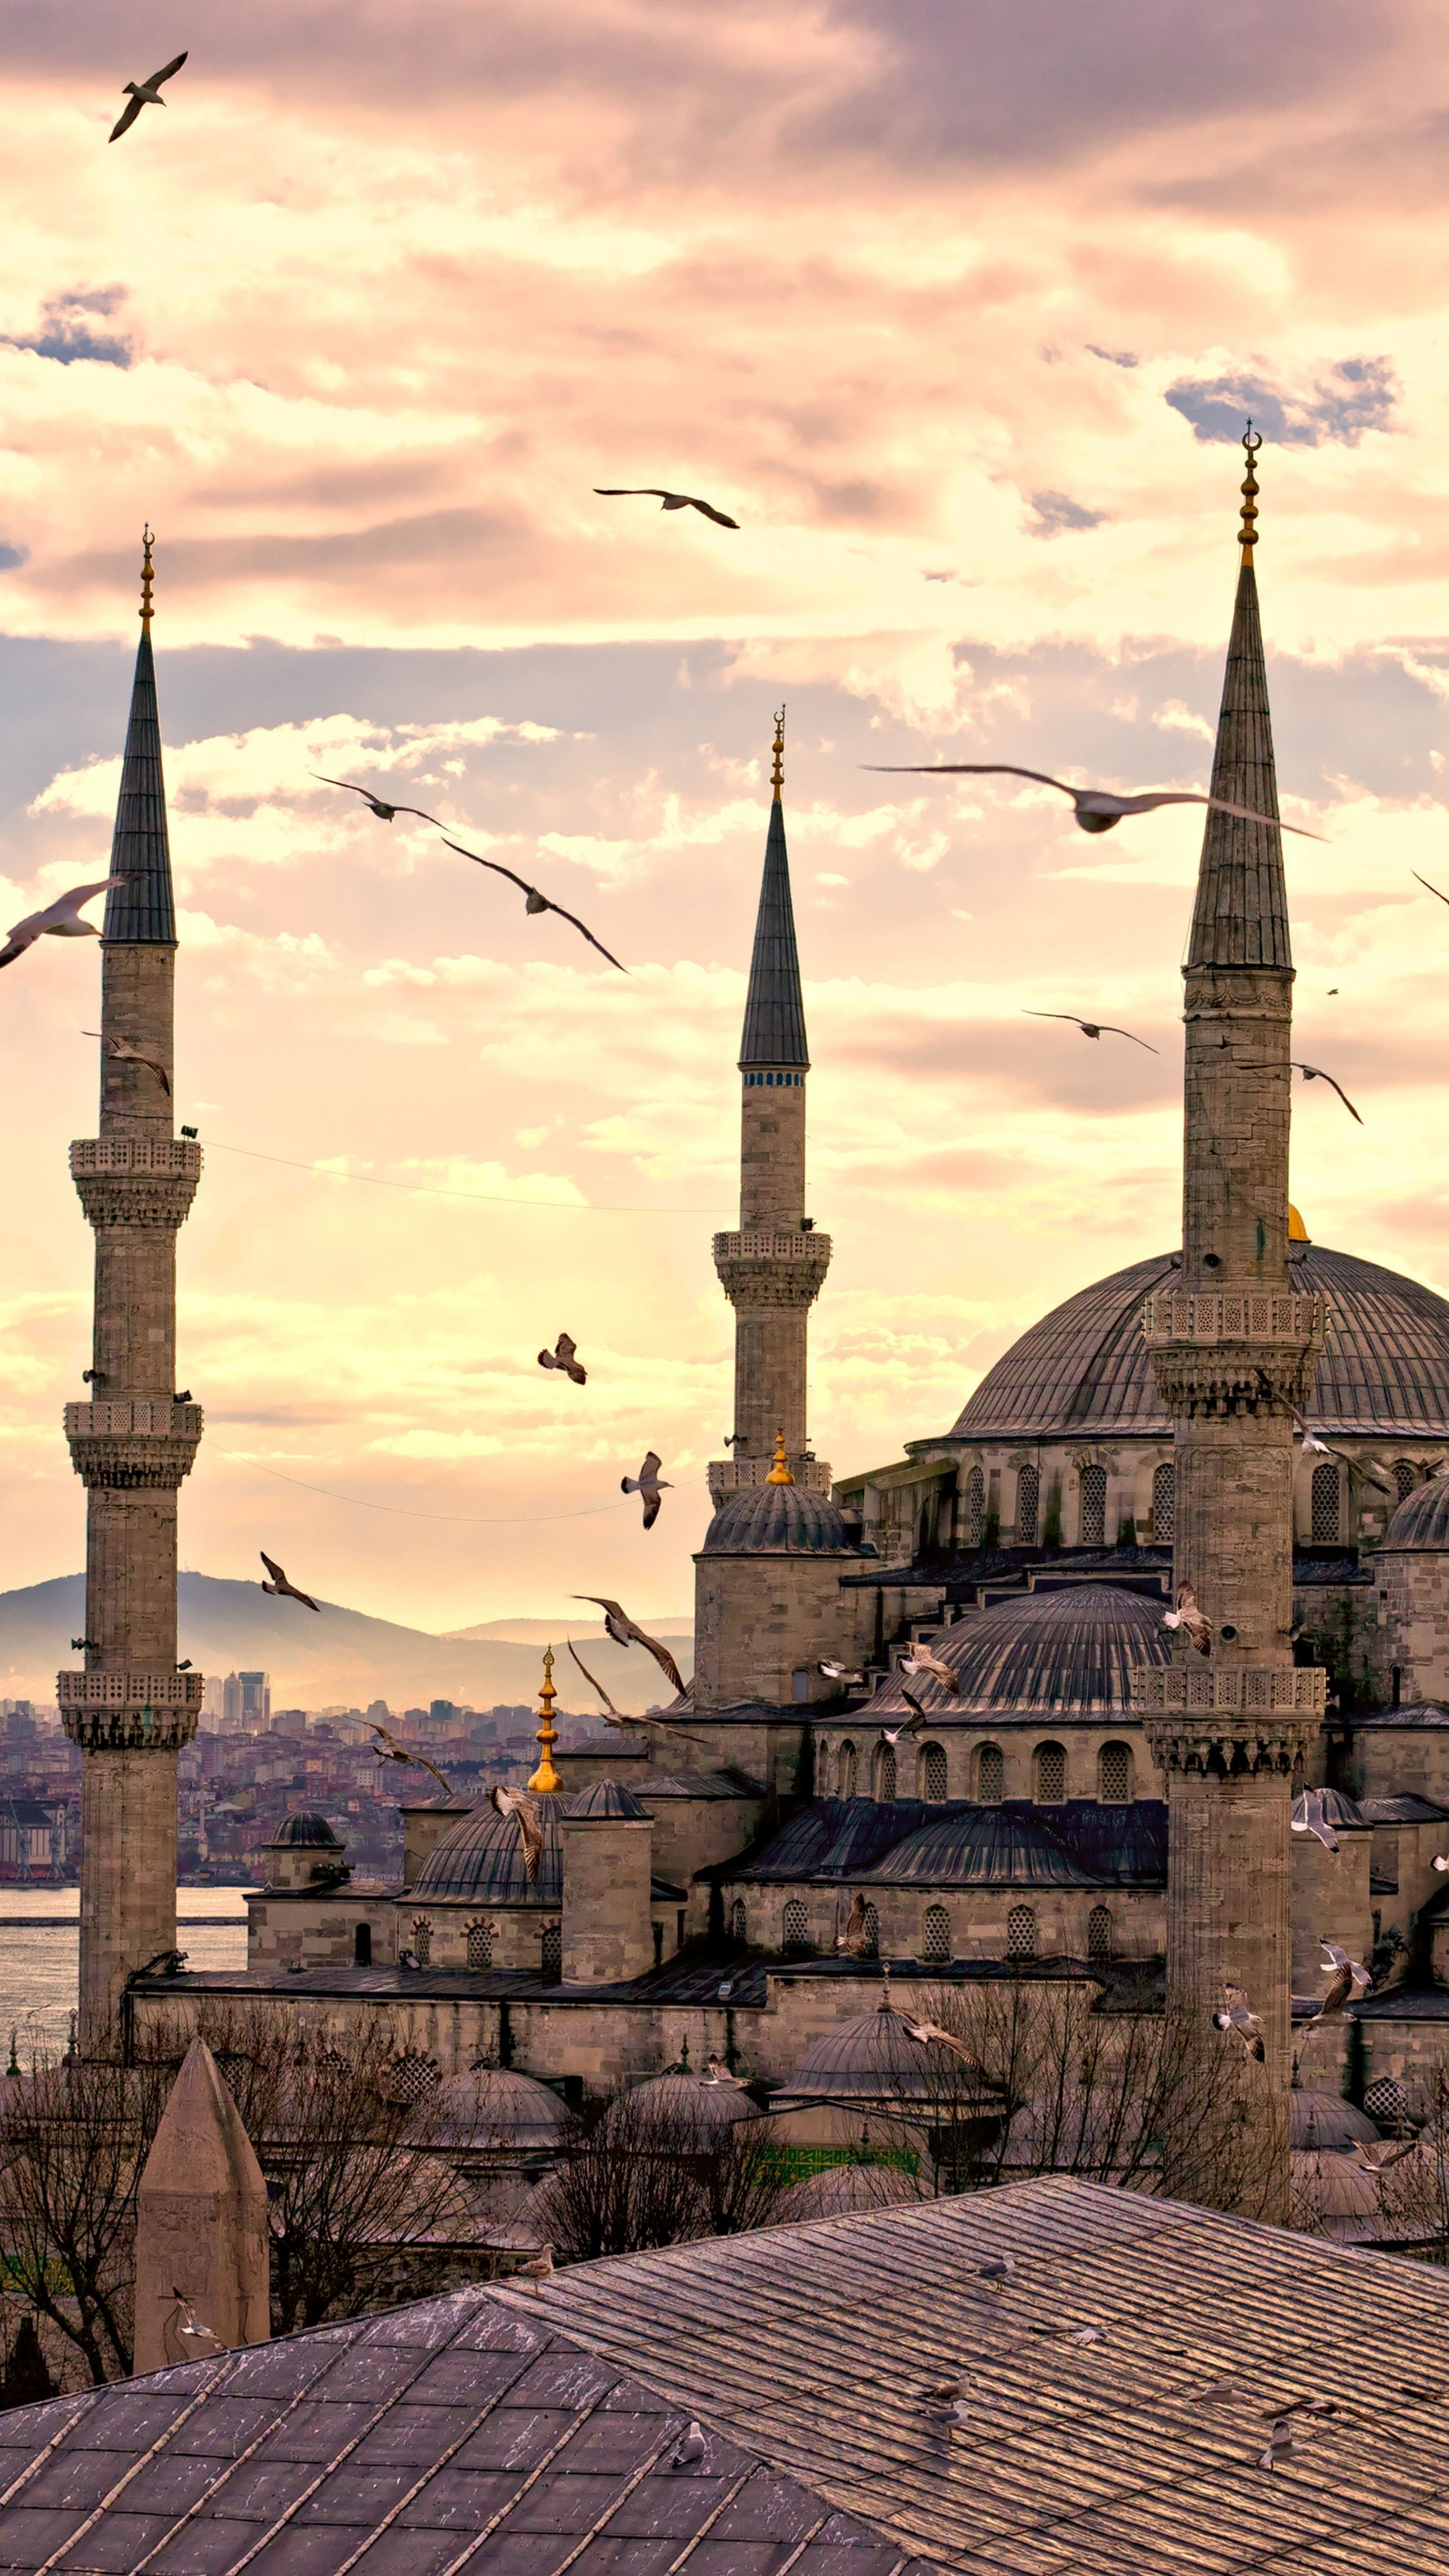 Military Wallpaper Quotes Wallpaper Sultan Ahmed Mosque Istanbul Turkey Travel